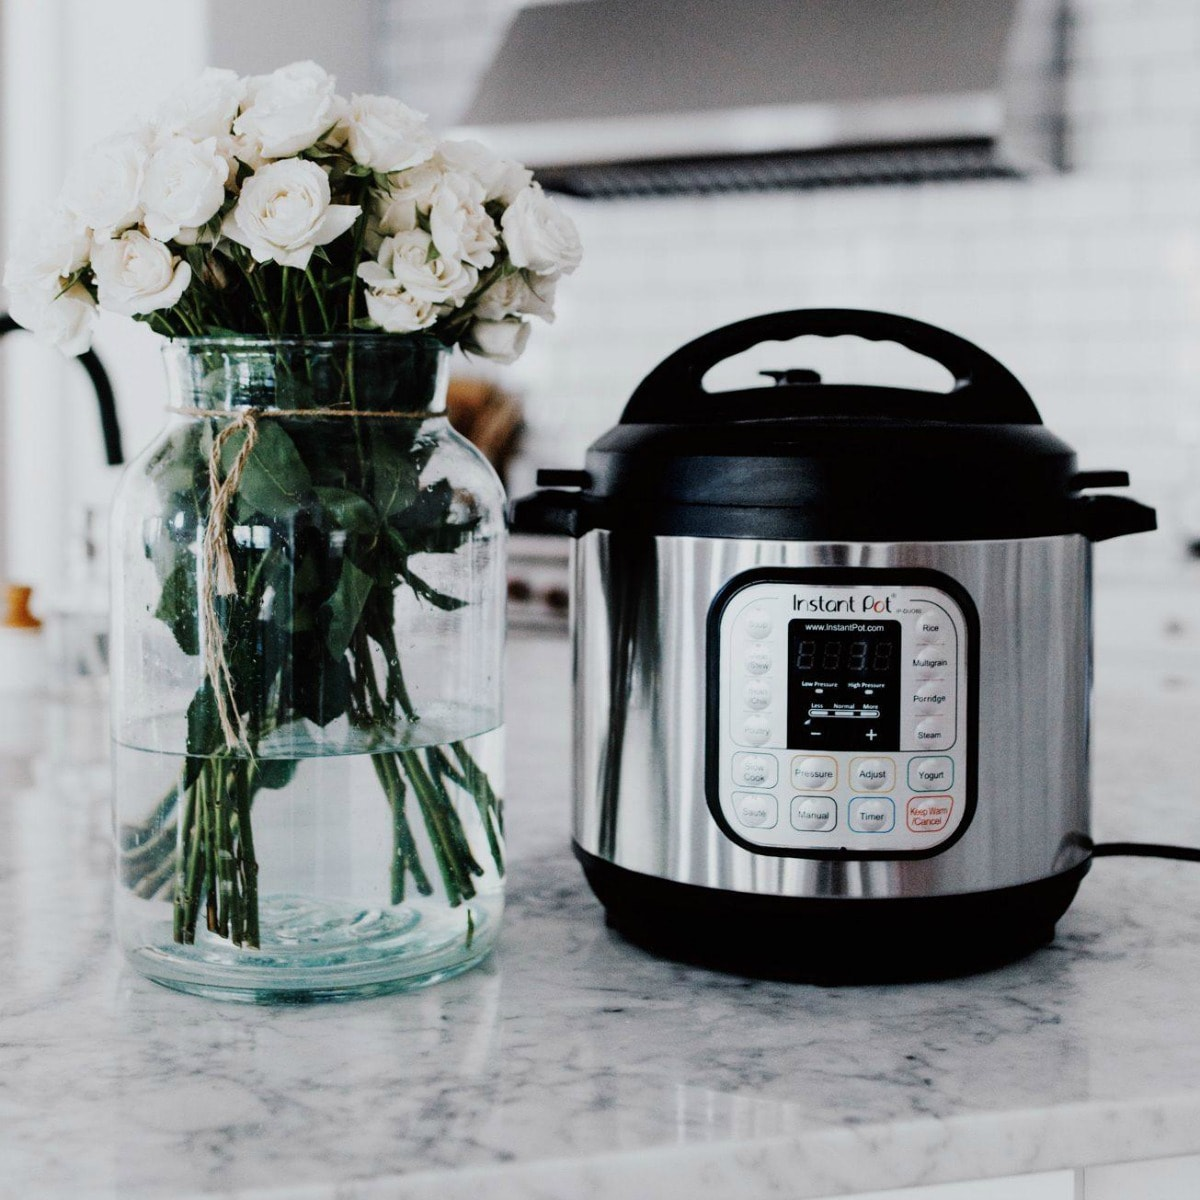 instant pot deal macy's black friday in july